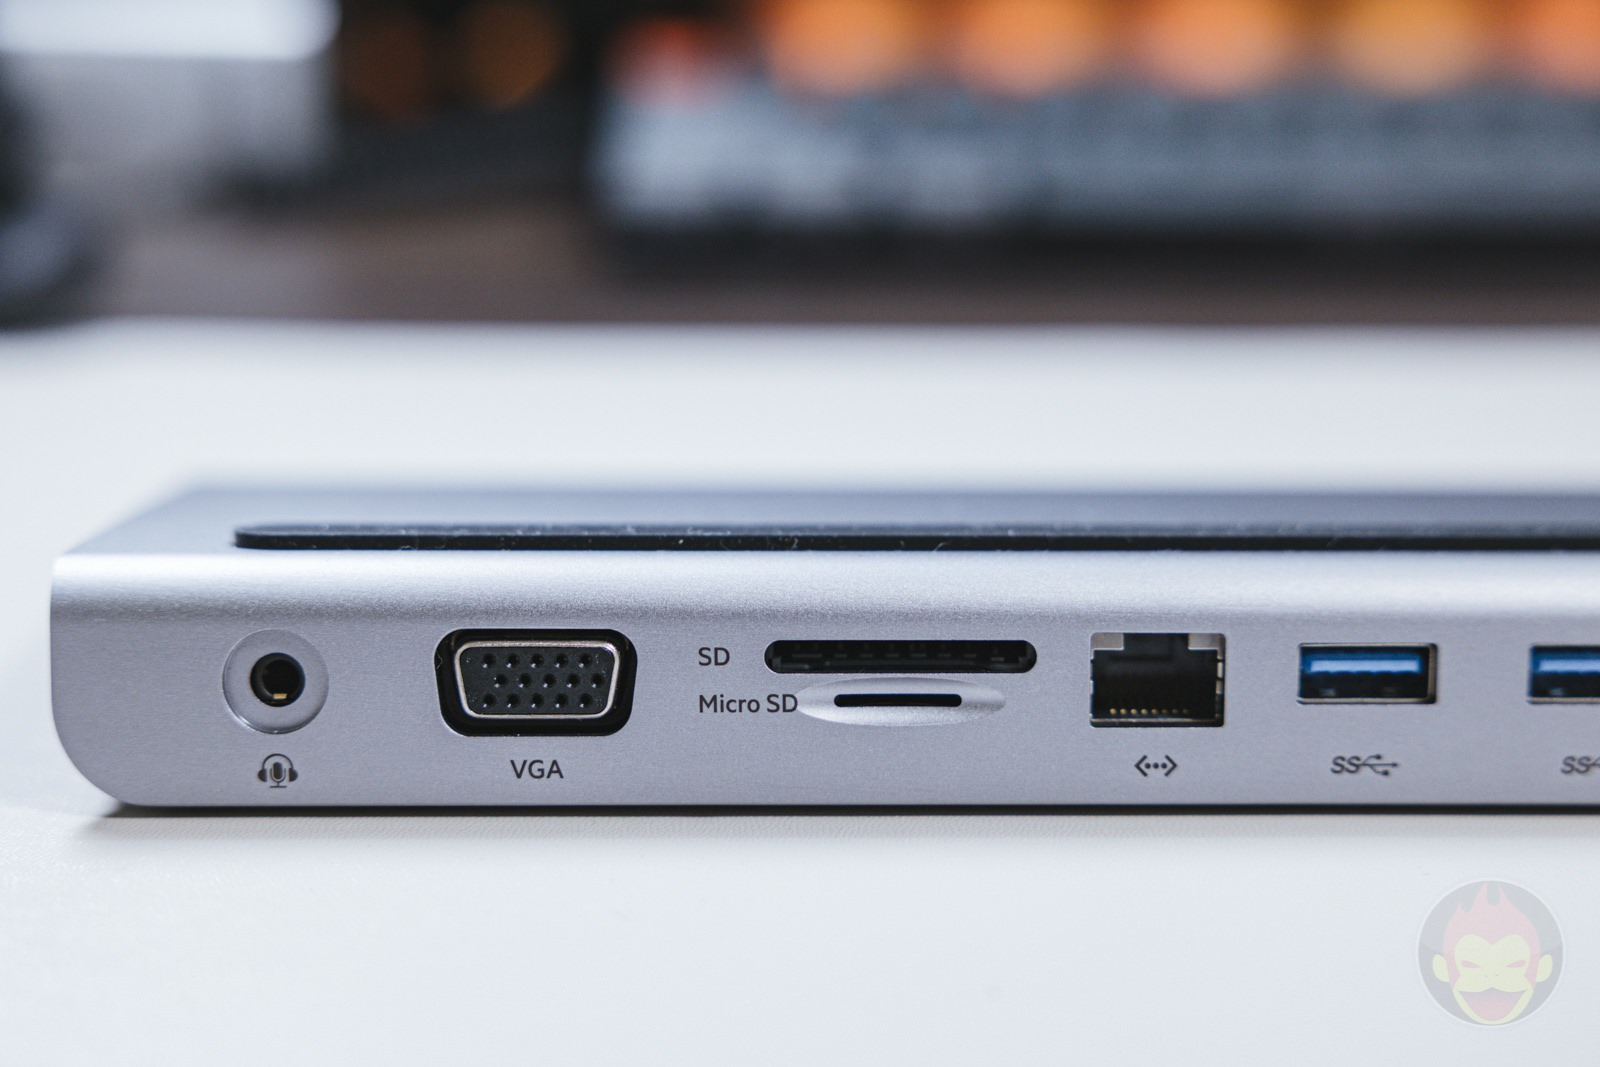 CONNECT USB C 11 in 1 MutliPort Dock Review 02